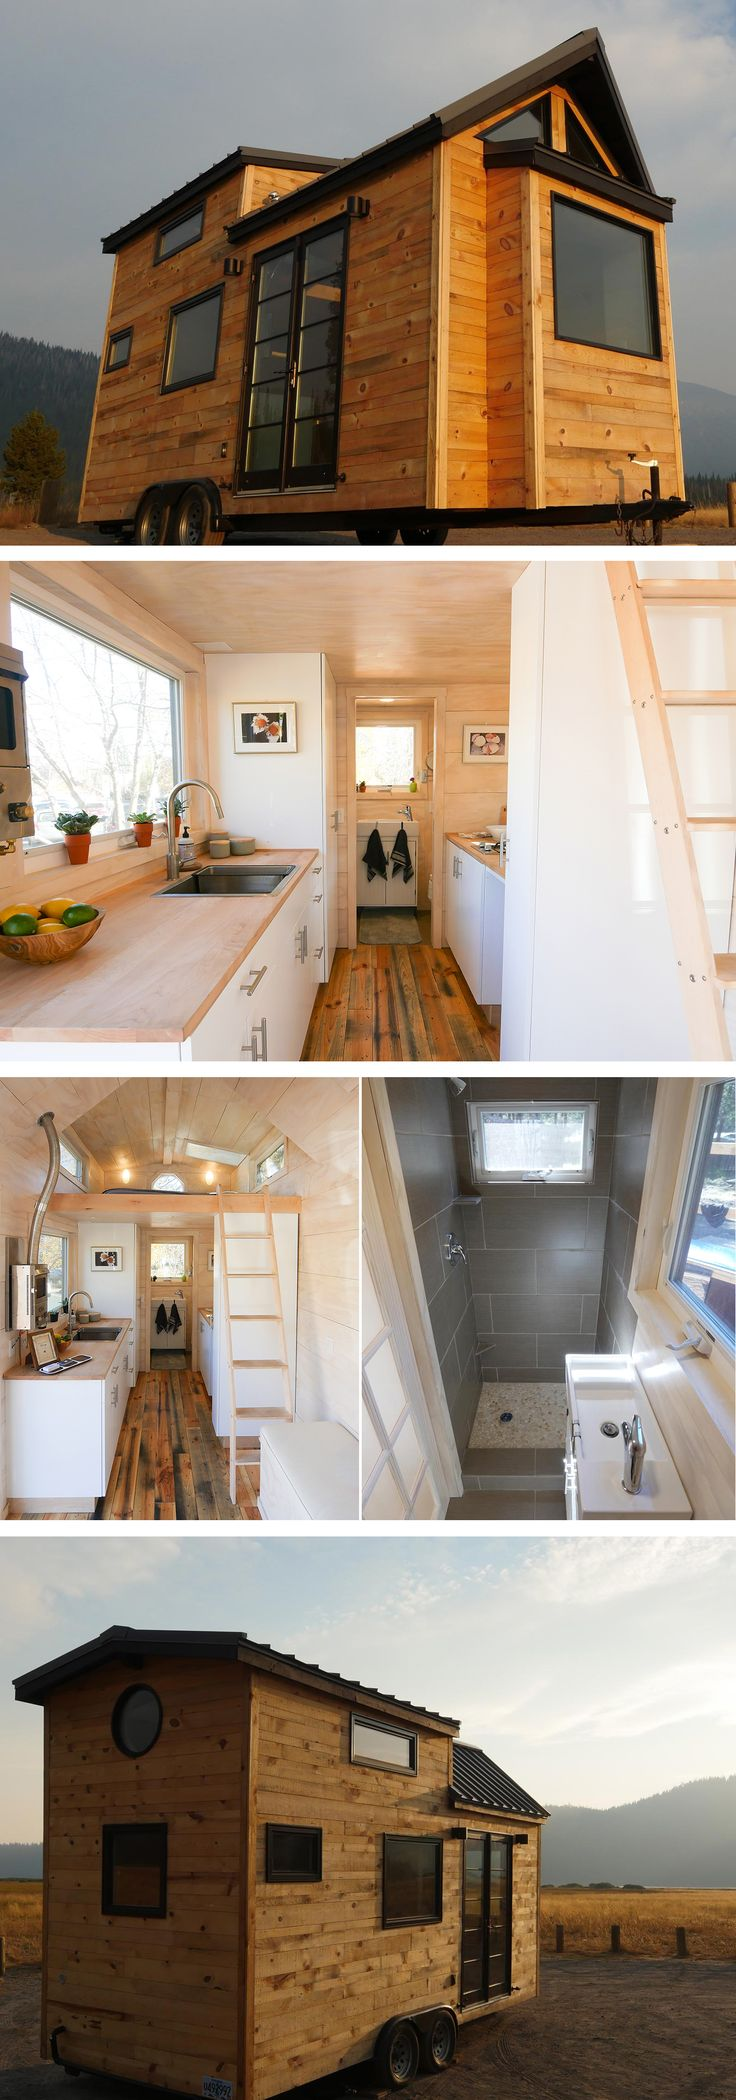 17 Best ideas about Tiny House Movement on Pinterest Tiny house